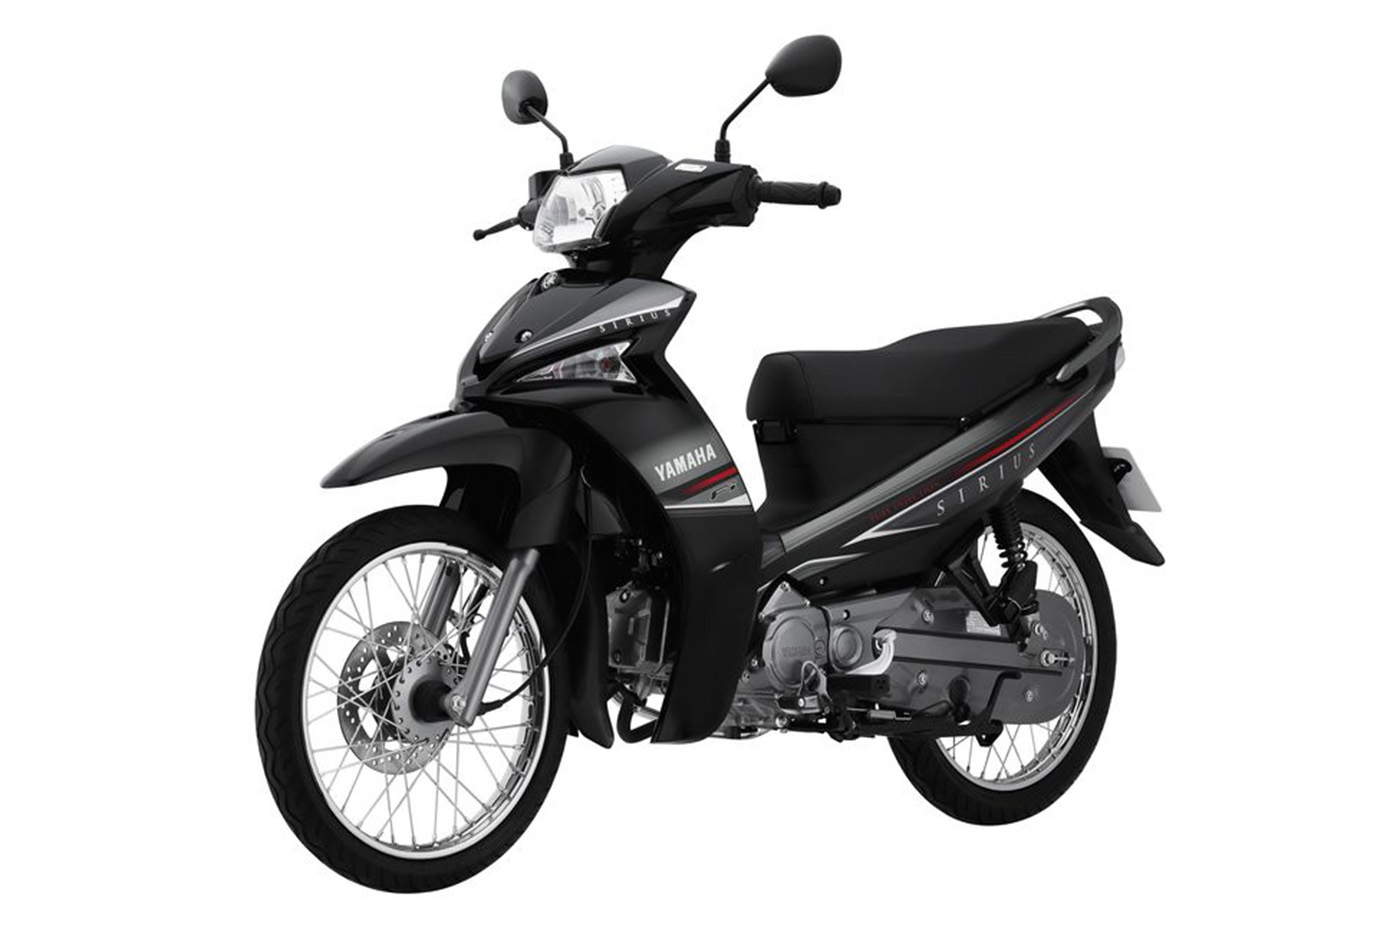 Yamaha sirius fi 2017 c m u m i gi b n t 20 tri u ng - Div position right ...